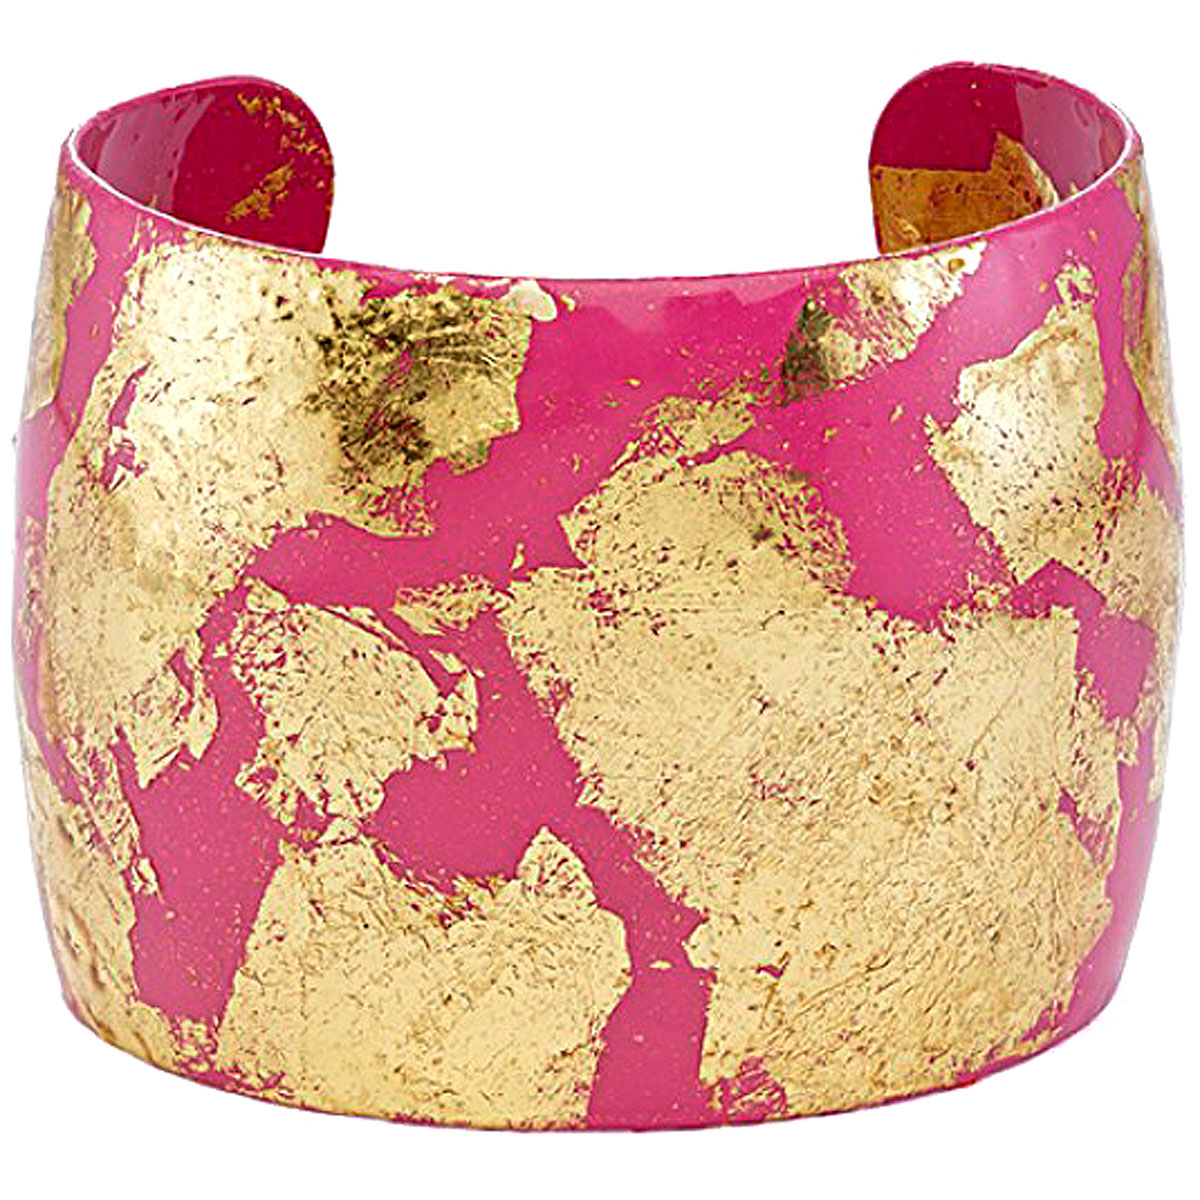 Evocateur Bracelet for Women, Pink, 22K Gold Leaf, 2019